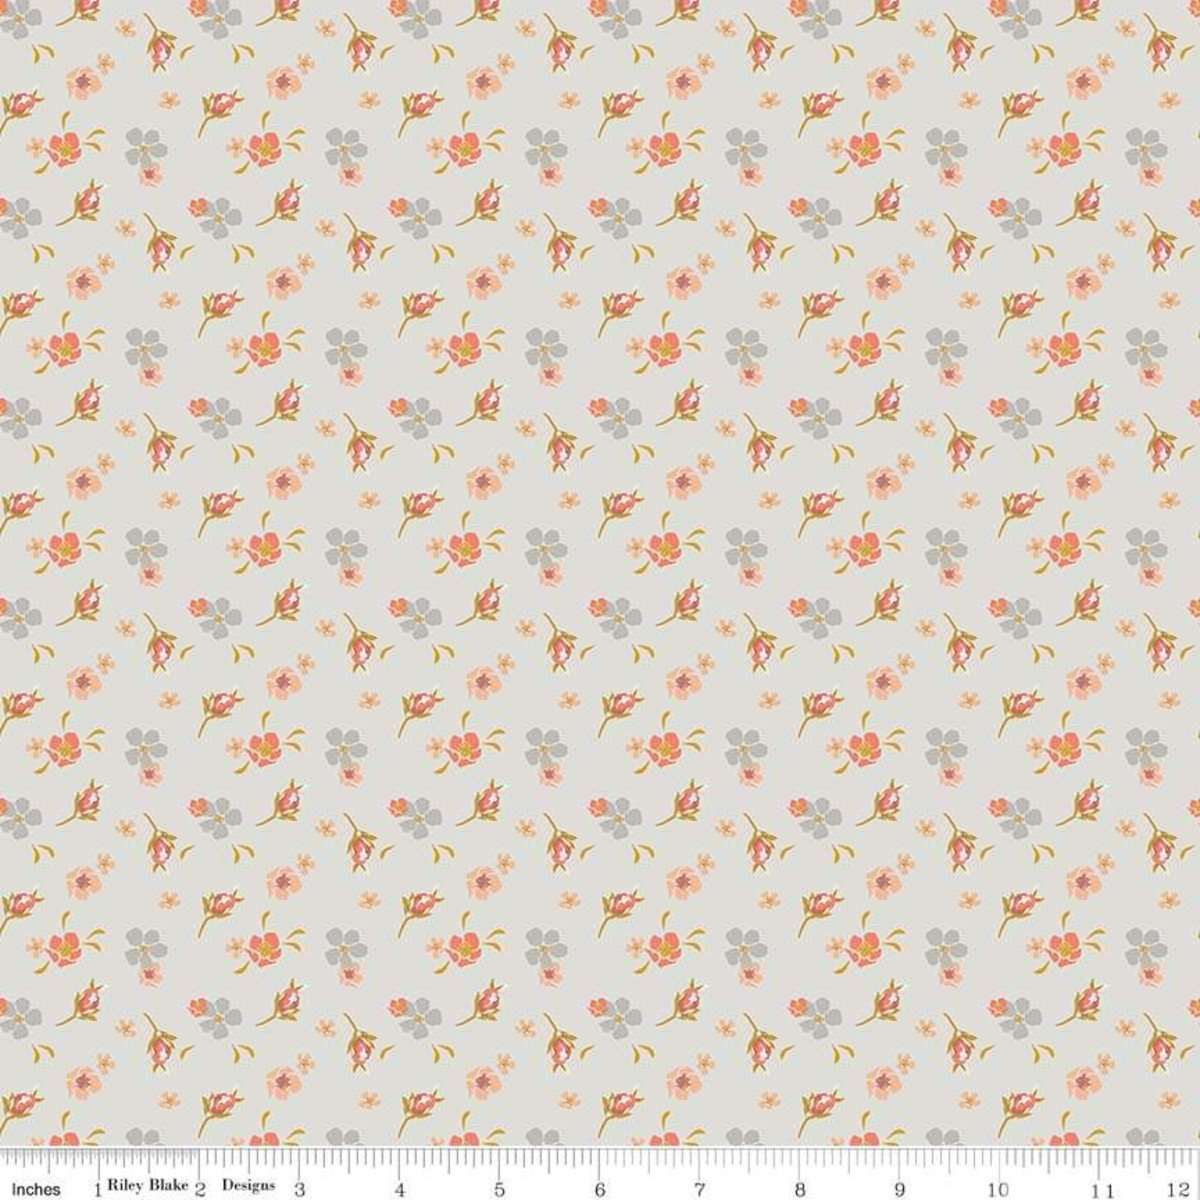 Riley Blake - Fancy Pants Designs - Amber Labou - Golden Days - Small Floral - Cream